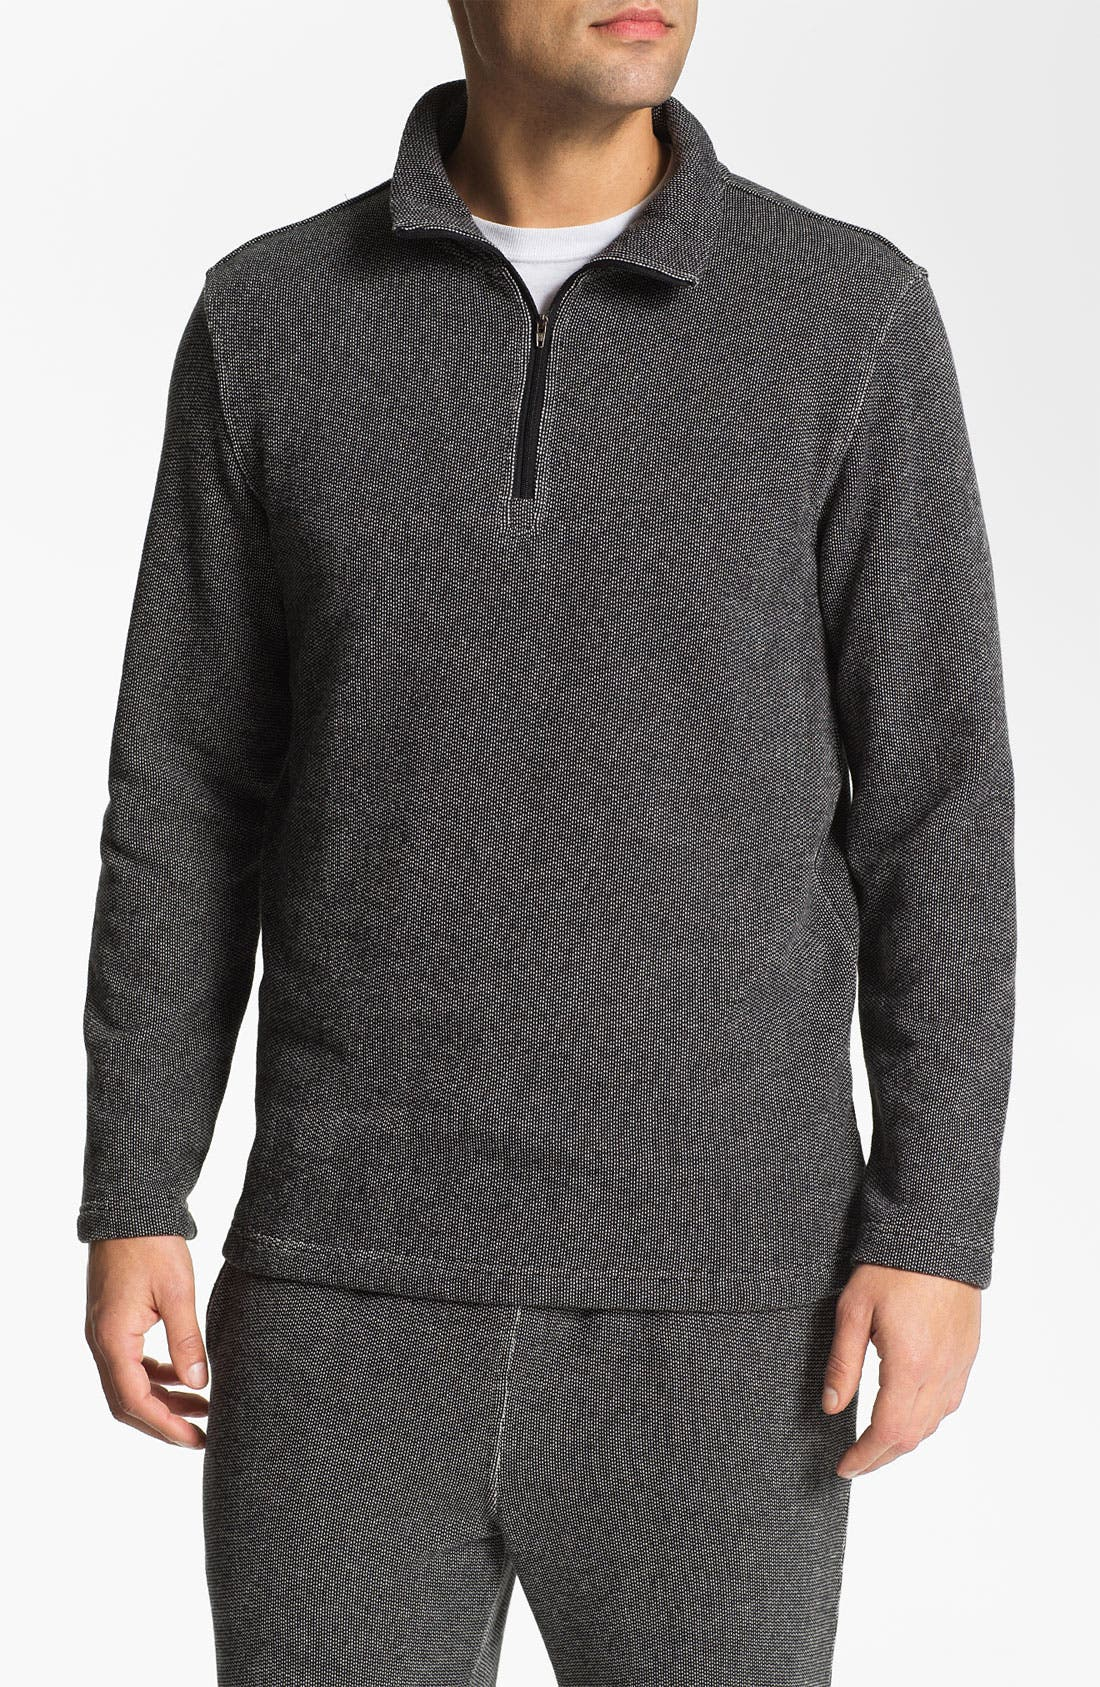 Main Image - Daniel Buchler Quarter Zip Textured Cotton Blend Sweatshirt